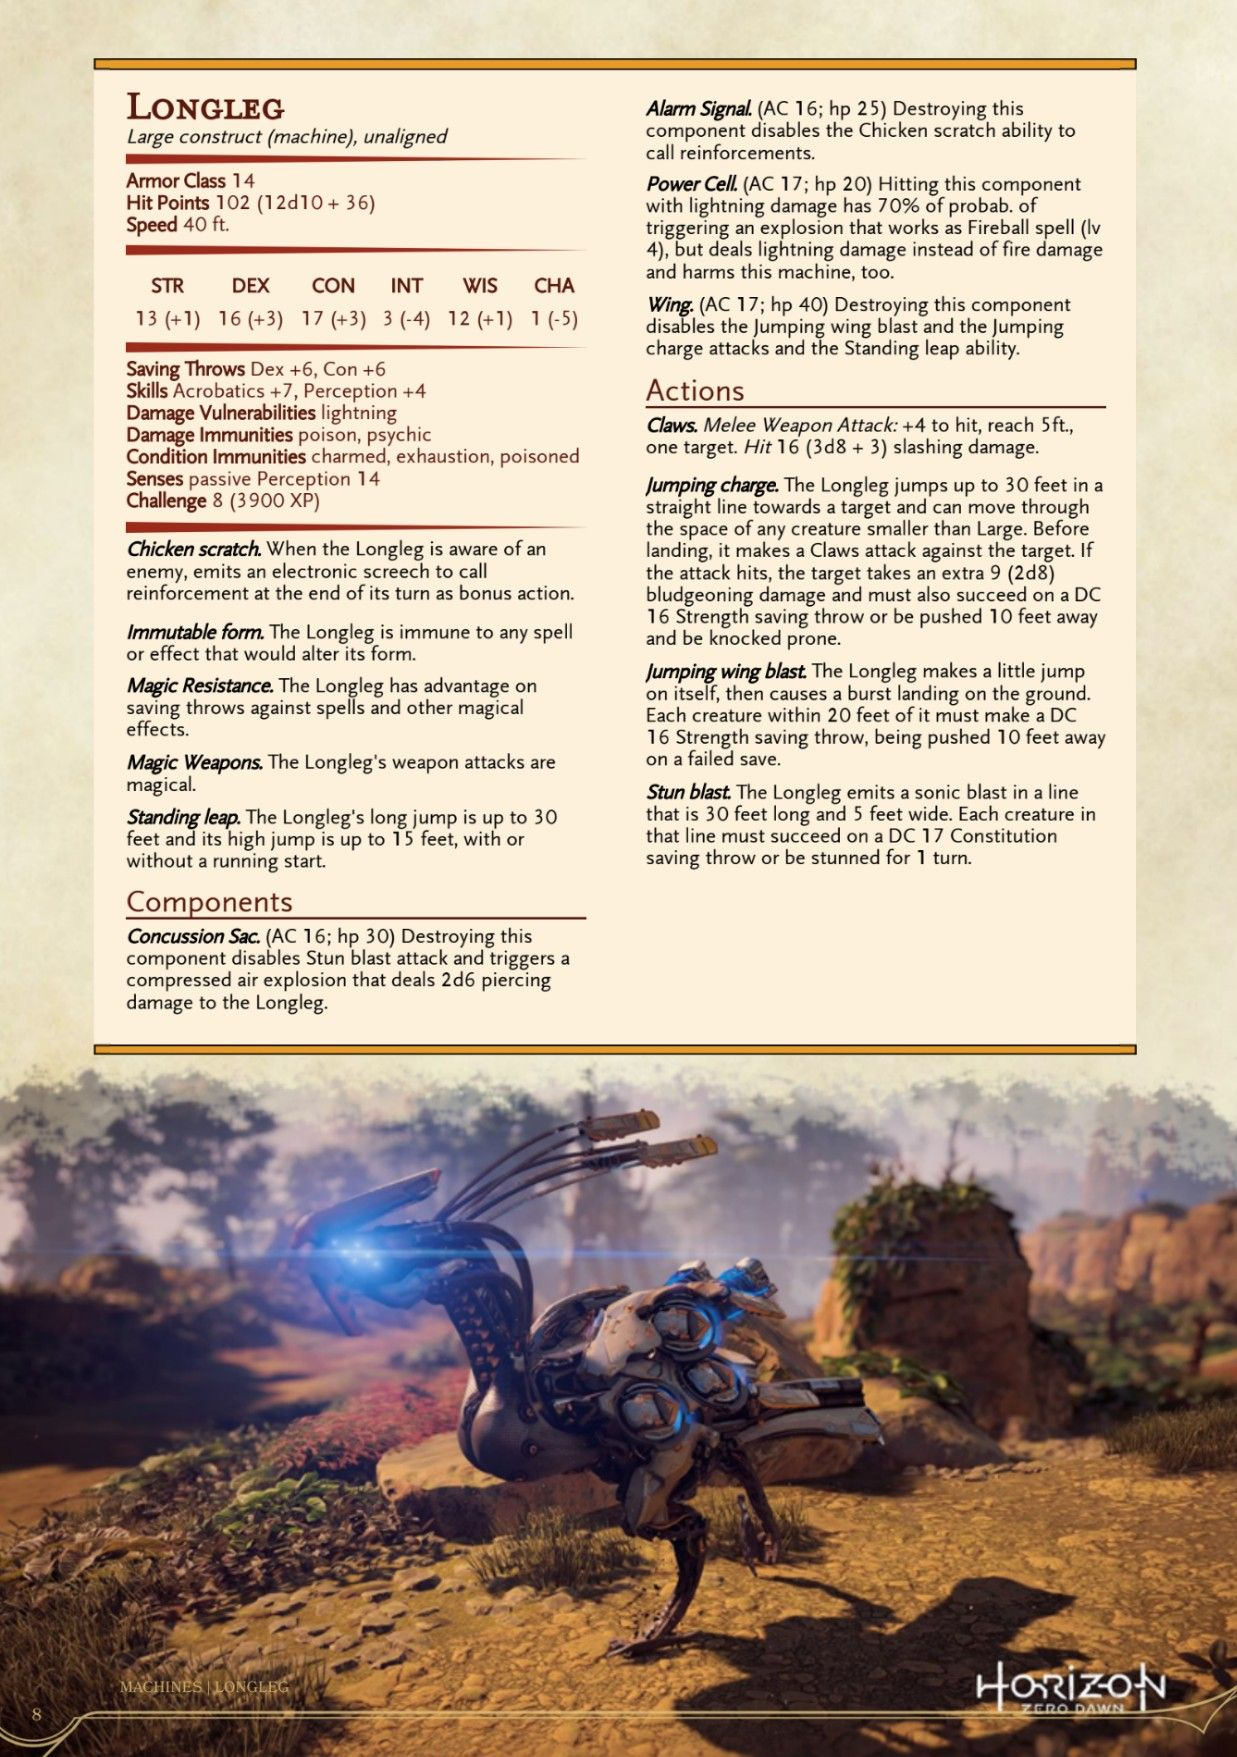 Pin by Andrew on D&D in 2019 | Dnd monsters, Dungeons